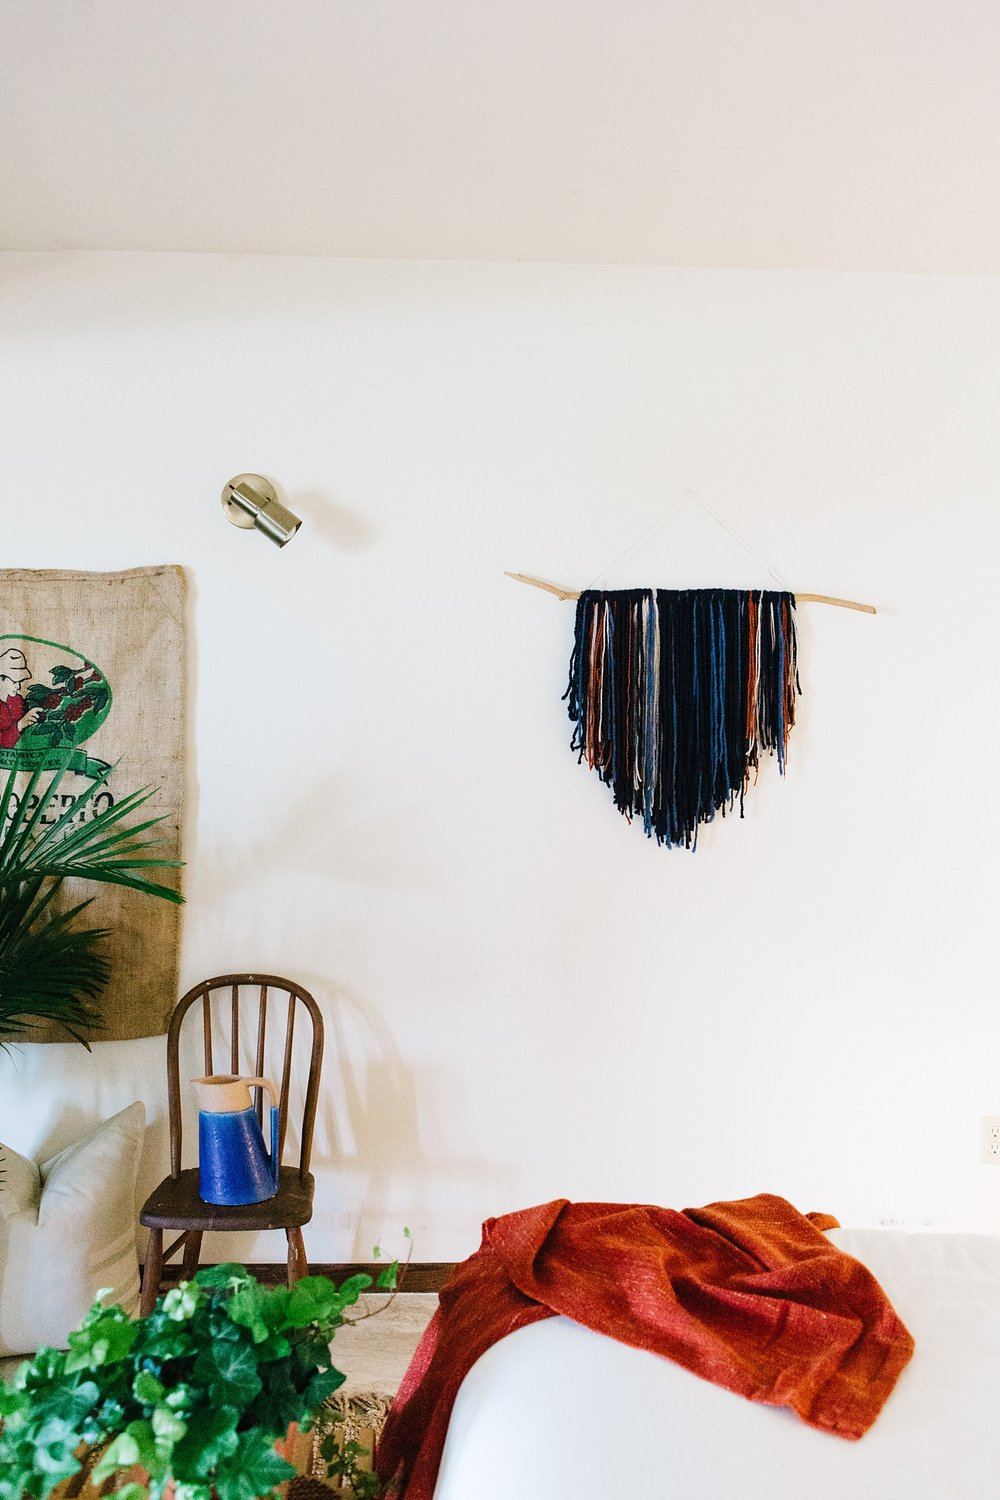 Notes of orange in the boho wall hanging are picked up from the burnt terracotta throw at the foot of the bed. I chose a dominant color of navy for the wall hanging, and sporadically inserted other colors of blue, orange, and beige to add depth and texture.